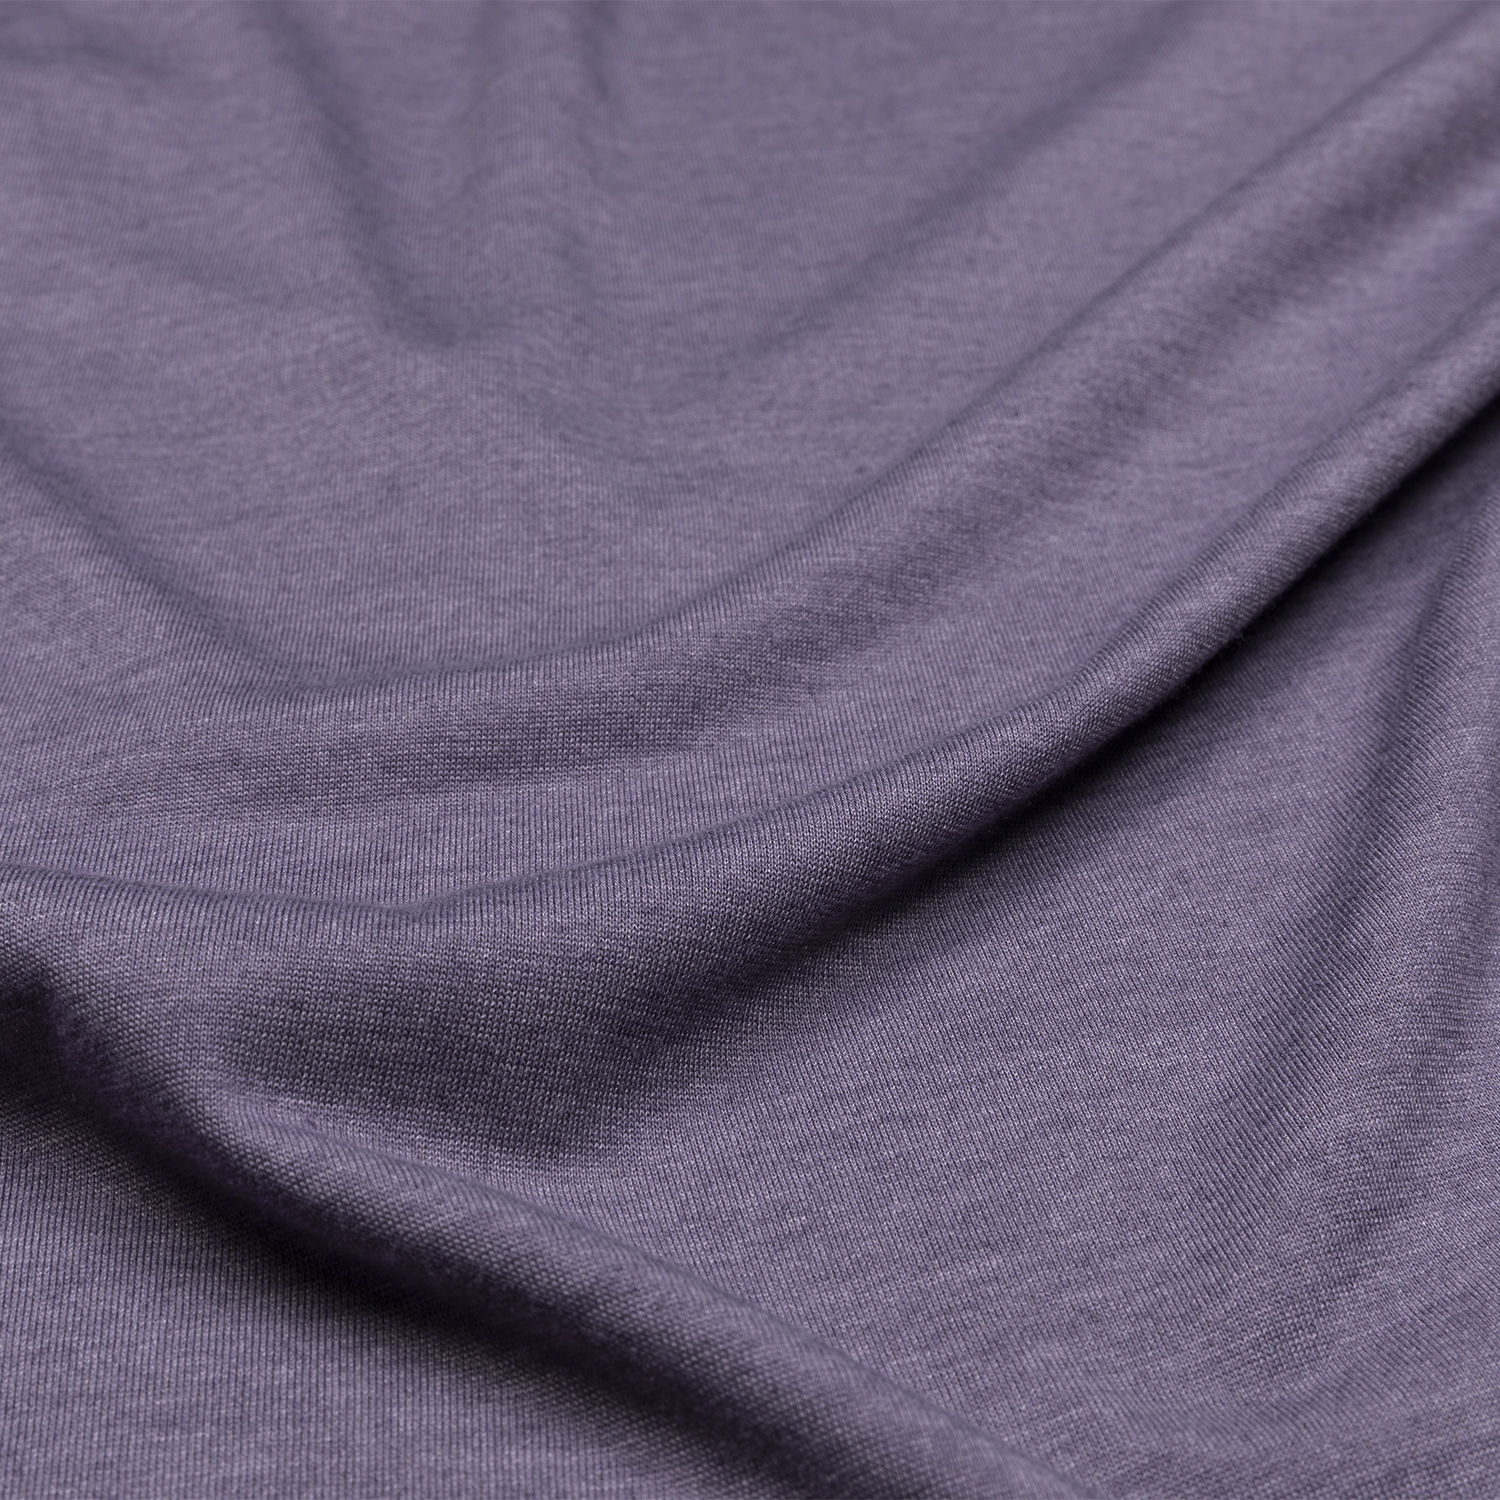 SAYSKY women's comrfotable for running t-shirt in purple color